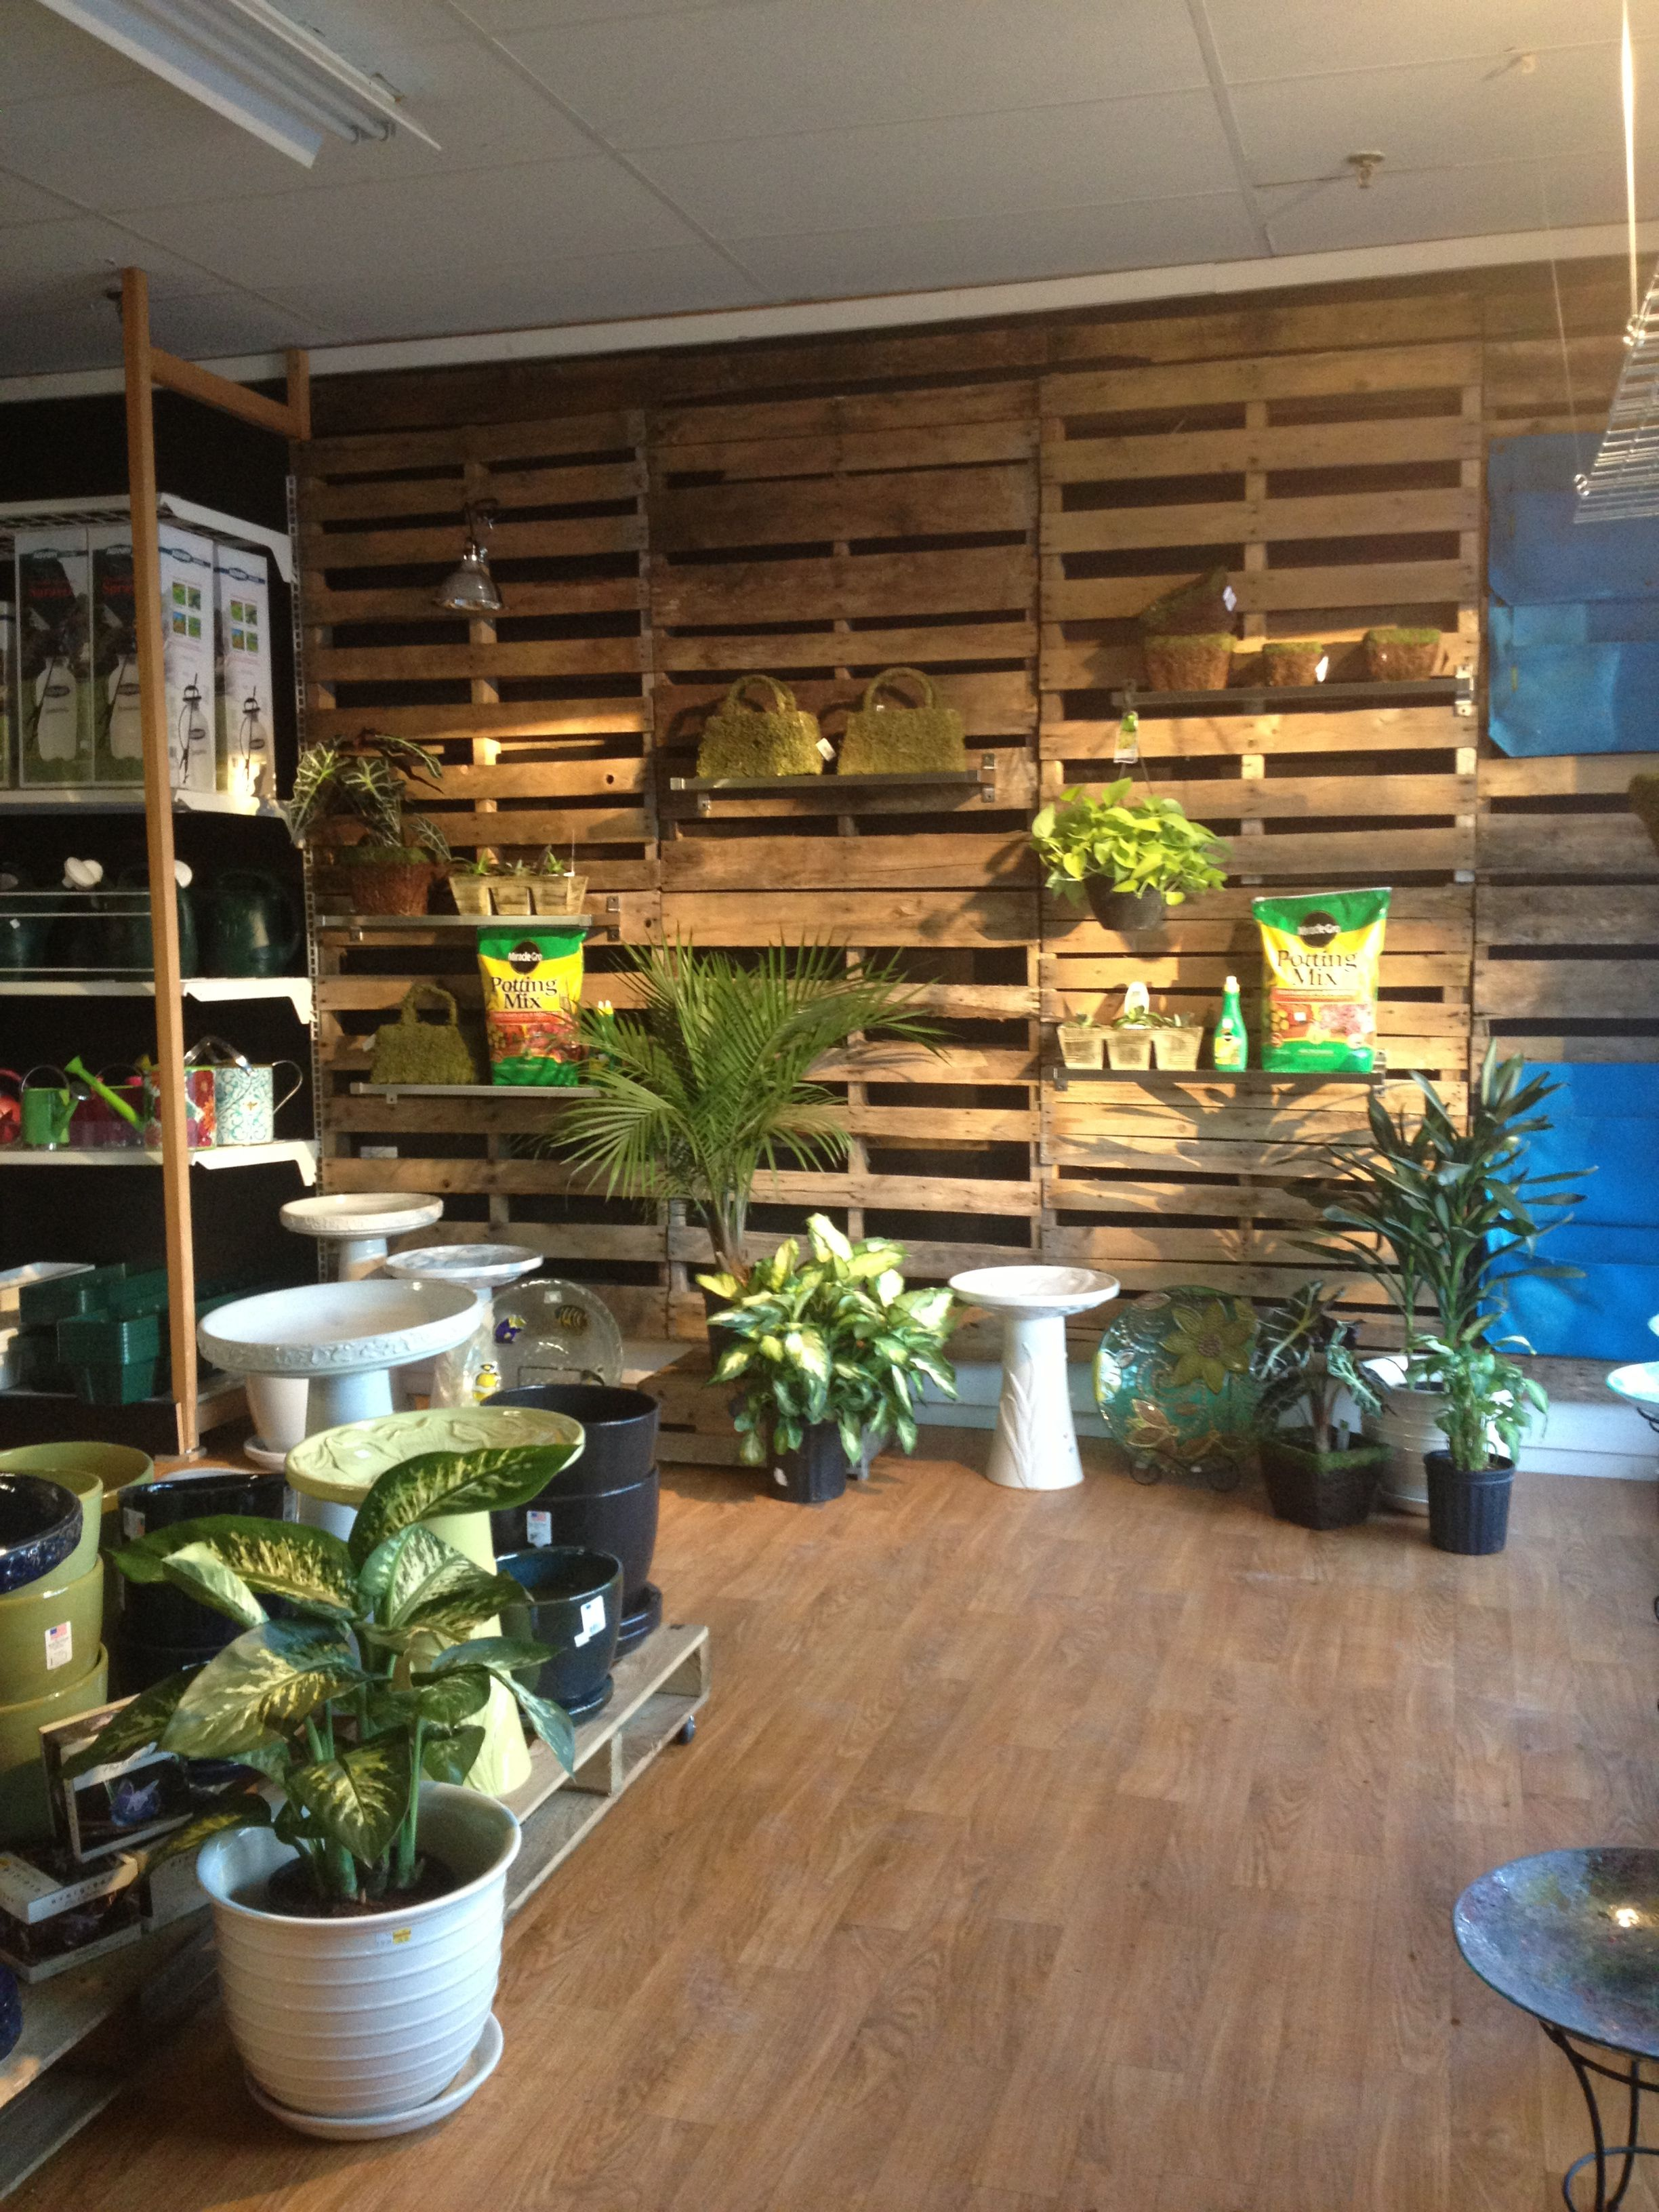 Pallet wall at my garden center pallet projects for Idea center dilshad garden